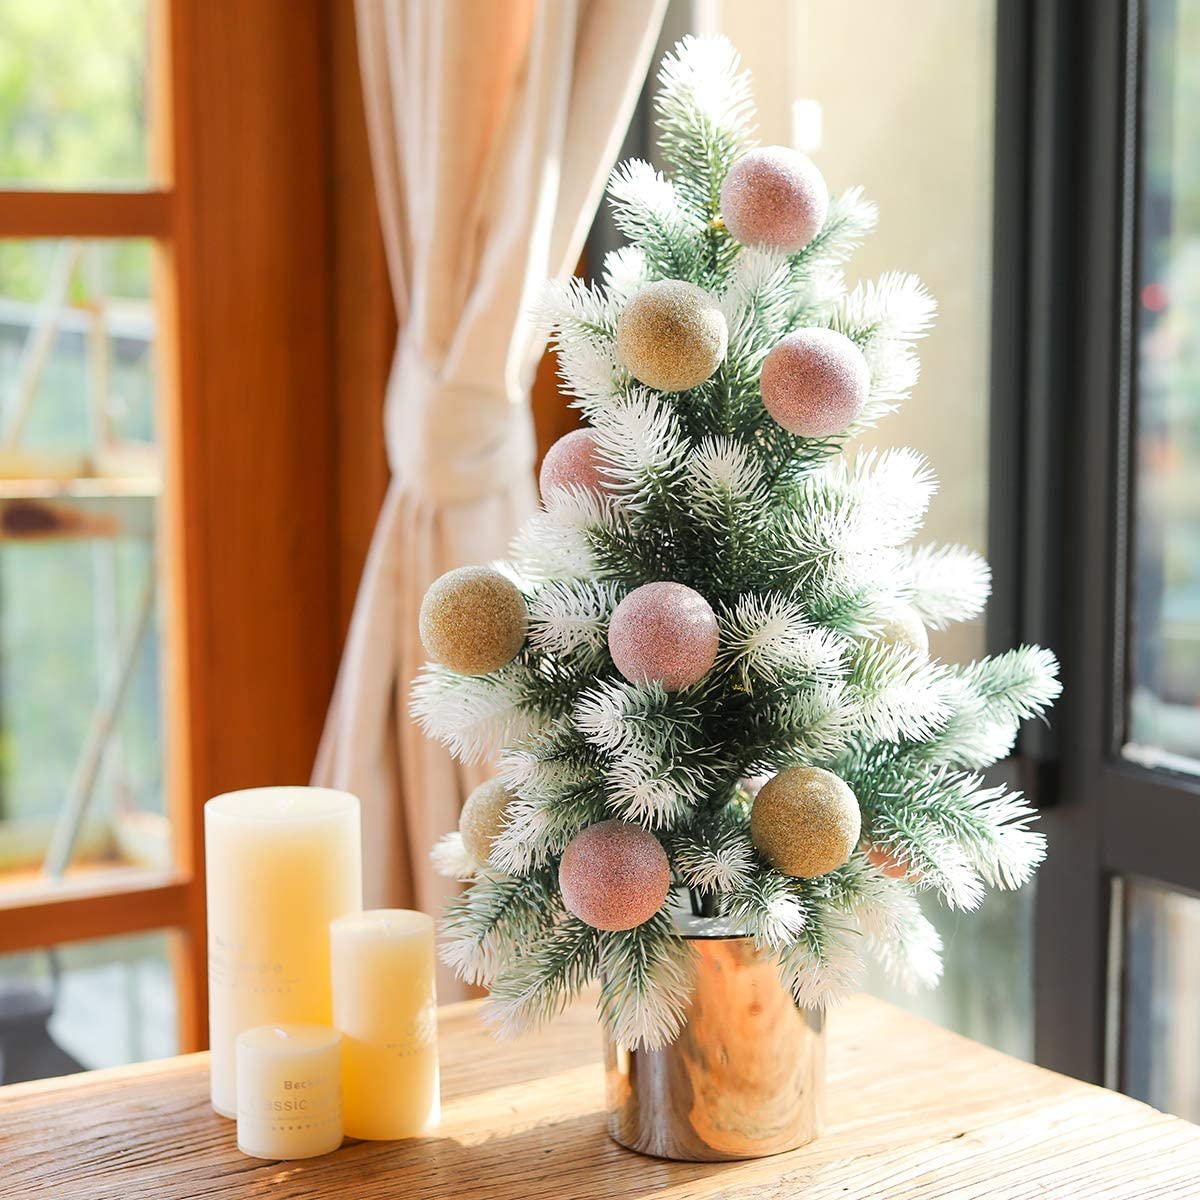 "PARTY JOY 23"" Artificial Mini Christmas Tree Small Pine Tree Tiny Christmas Tree Tabletop Includes Pots Christmas Ball for Holiday Crafts (White-Pink Champagne Gold)"